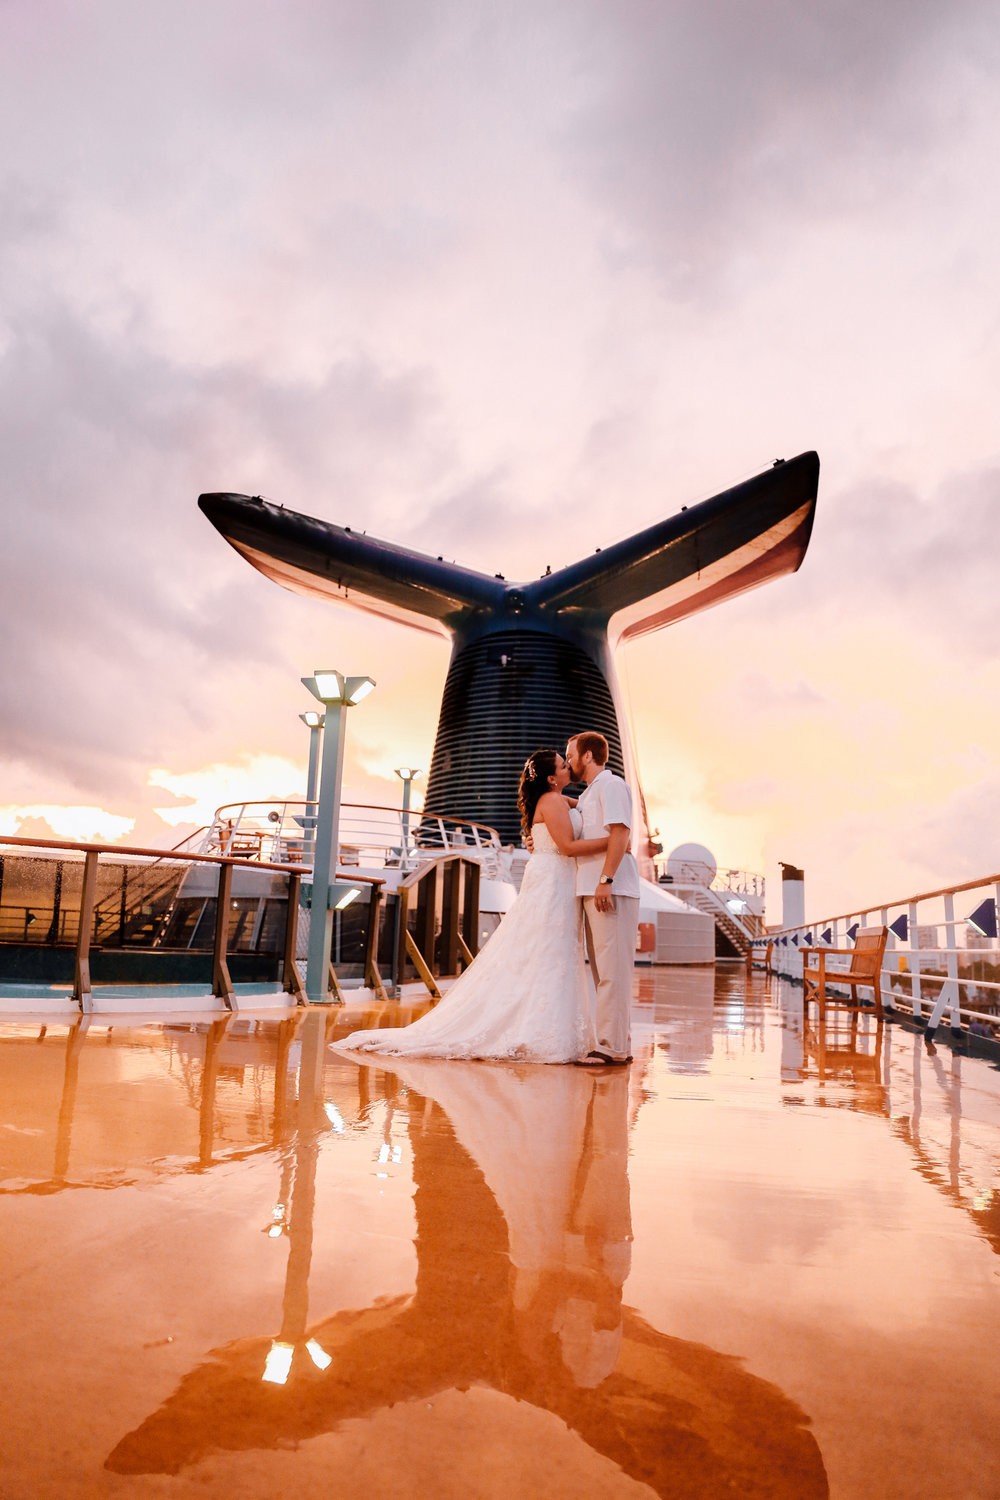 Tiffany and Ryan - Puerto Vallarta Wedding Photographer - 122.jpg